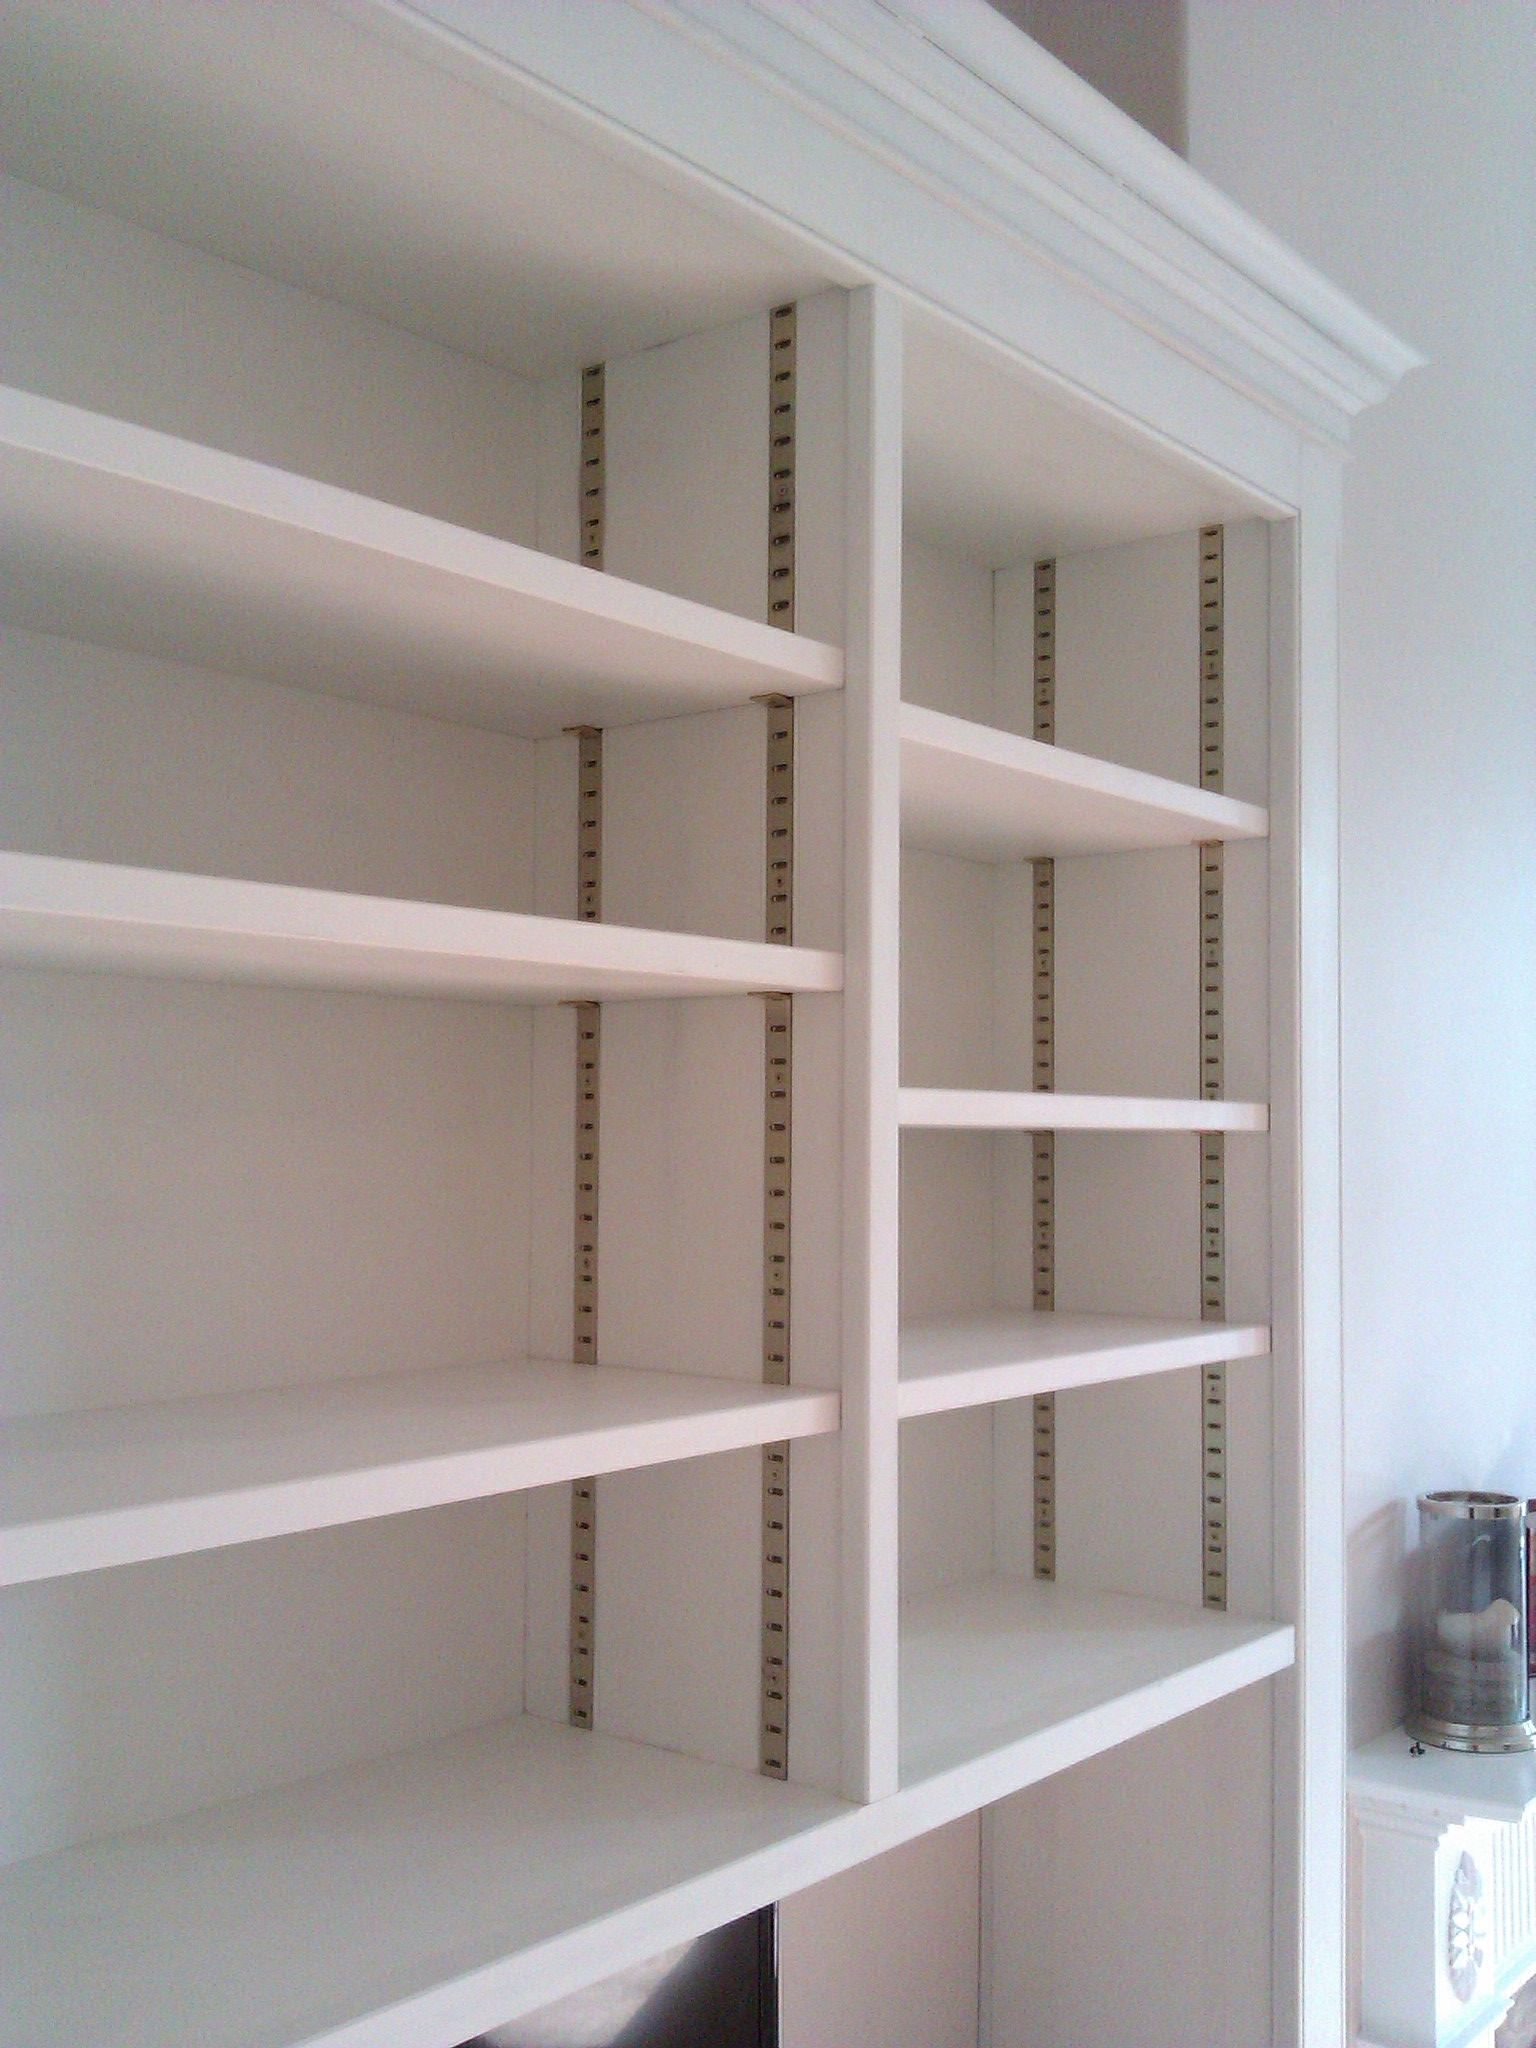 Brass Adjustable Shelving System Pantry In 2019 Pantry